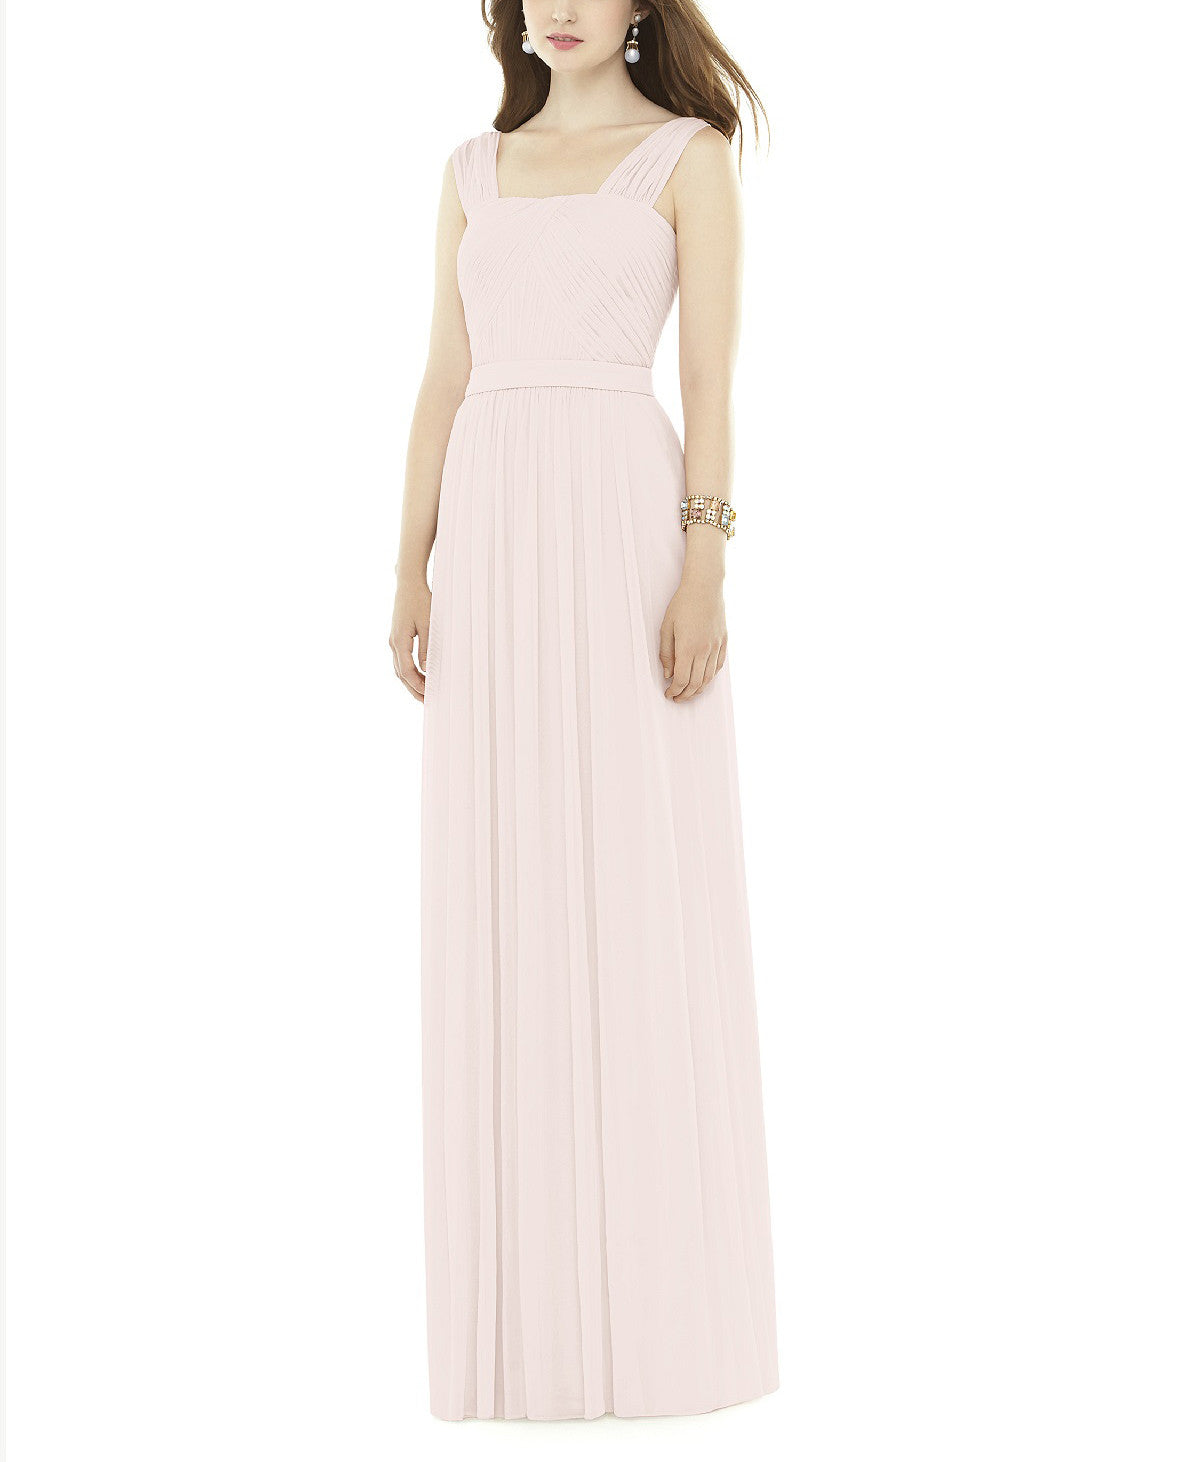 Alfred sung style d718 bridesmaid dress brideside alfred sung style d718 ombrellifo Choice Image